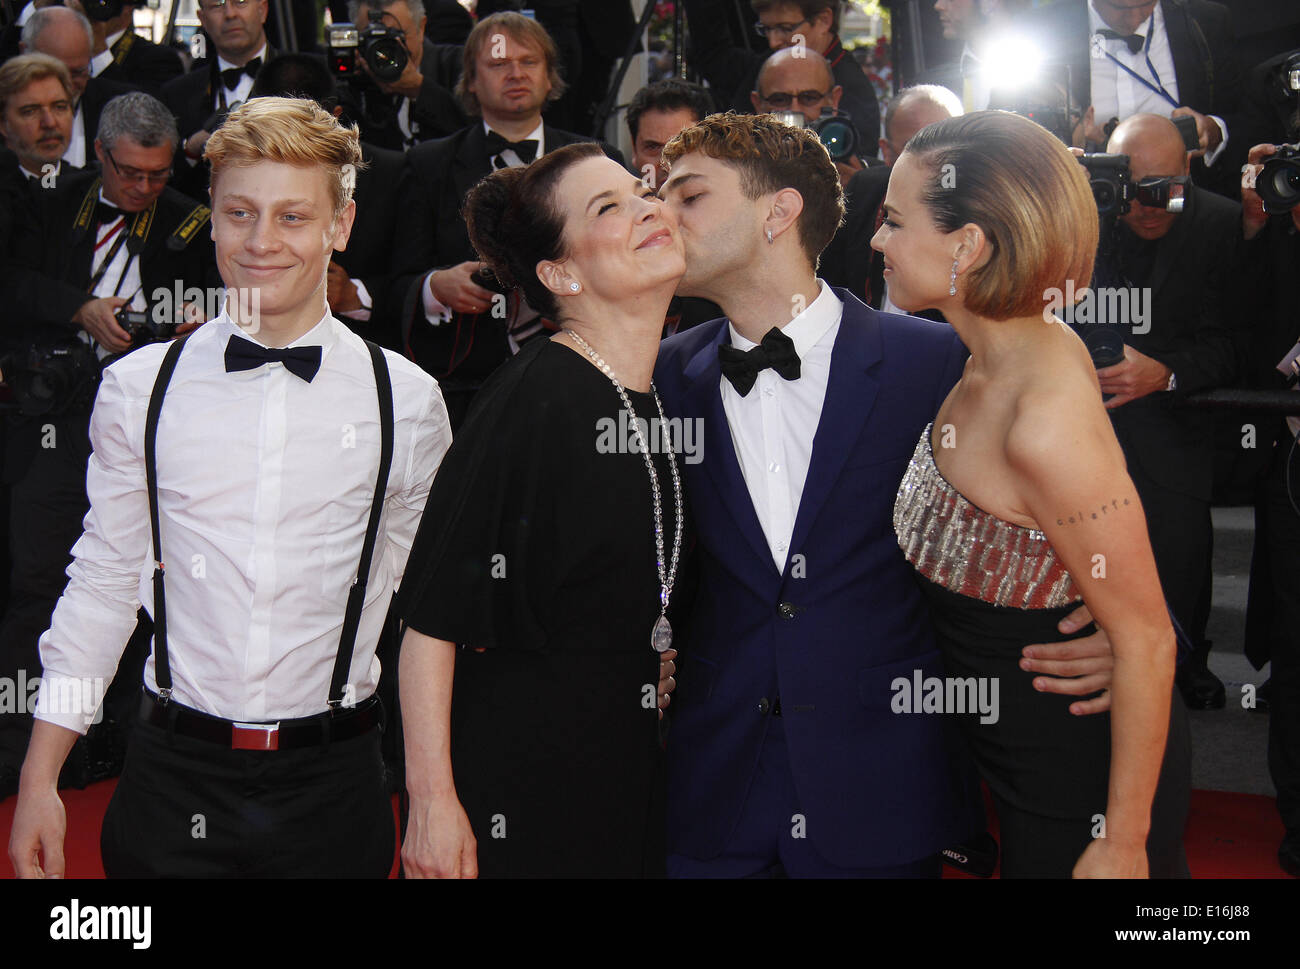 Cannes, France. 24th May, 2014. Actor Antoine-Olivier Pilon, actress Anne Dorval, director Xavier Dolan and actress Suzanne Clement (from L to R) arrive for the screening of 'Per un pugno di dollari' (A Fistful of Dollars) and the closing award ceremony of the 67th Cannes Film Festival, in Cannes, France, May 24, 2014. Credit:  Ye Pingfan/Xinhua/Alamy Live News - Stock Image